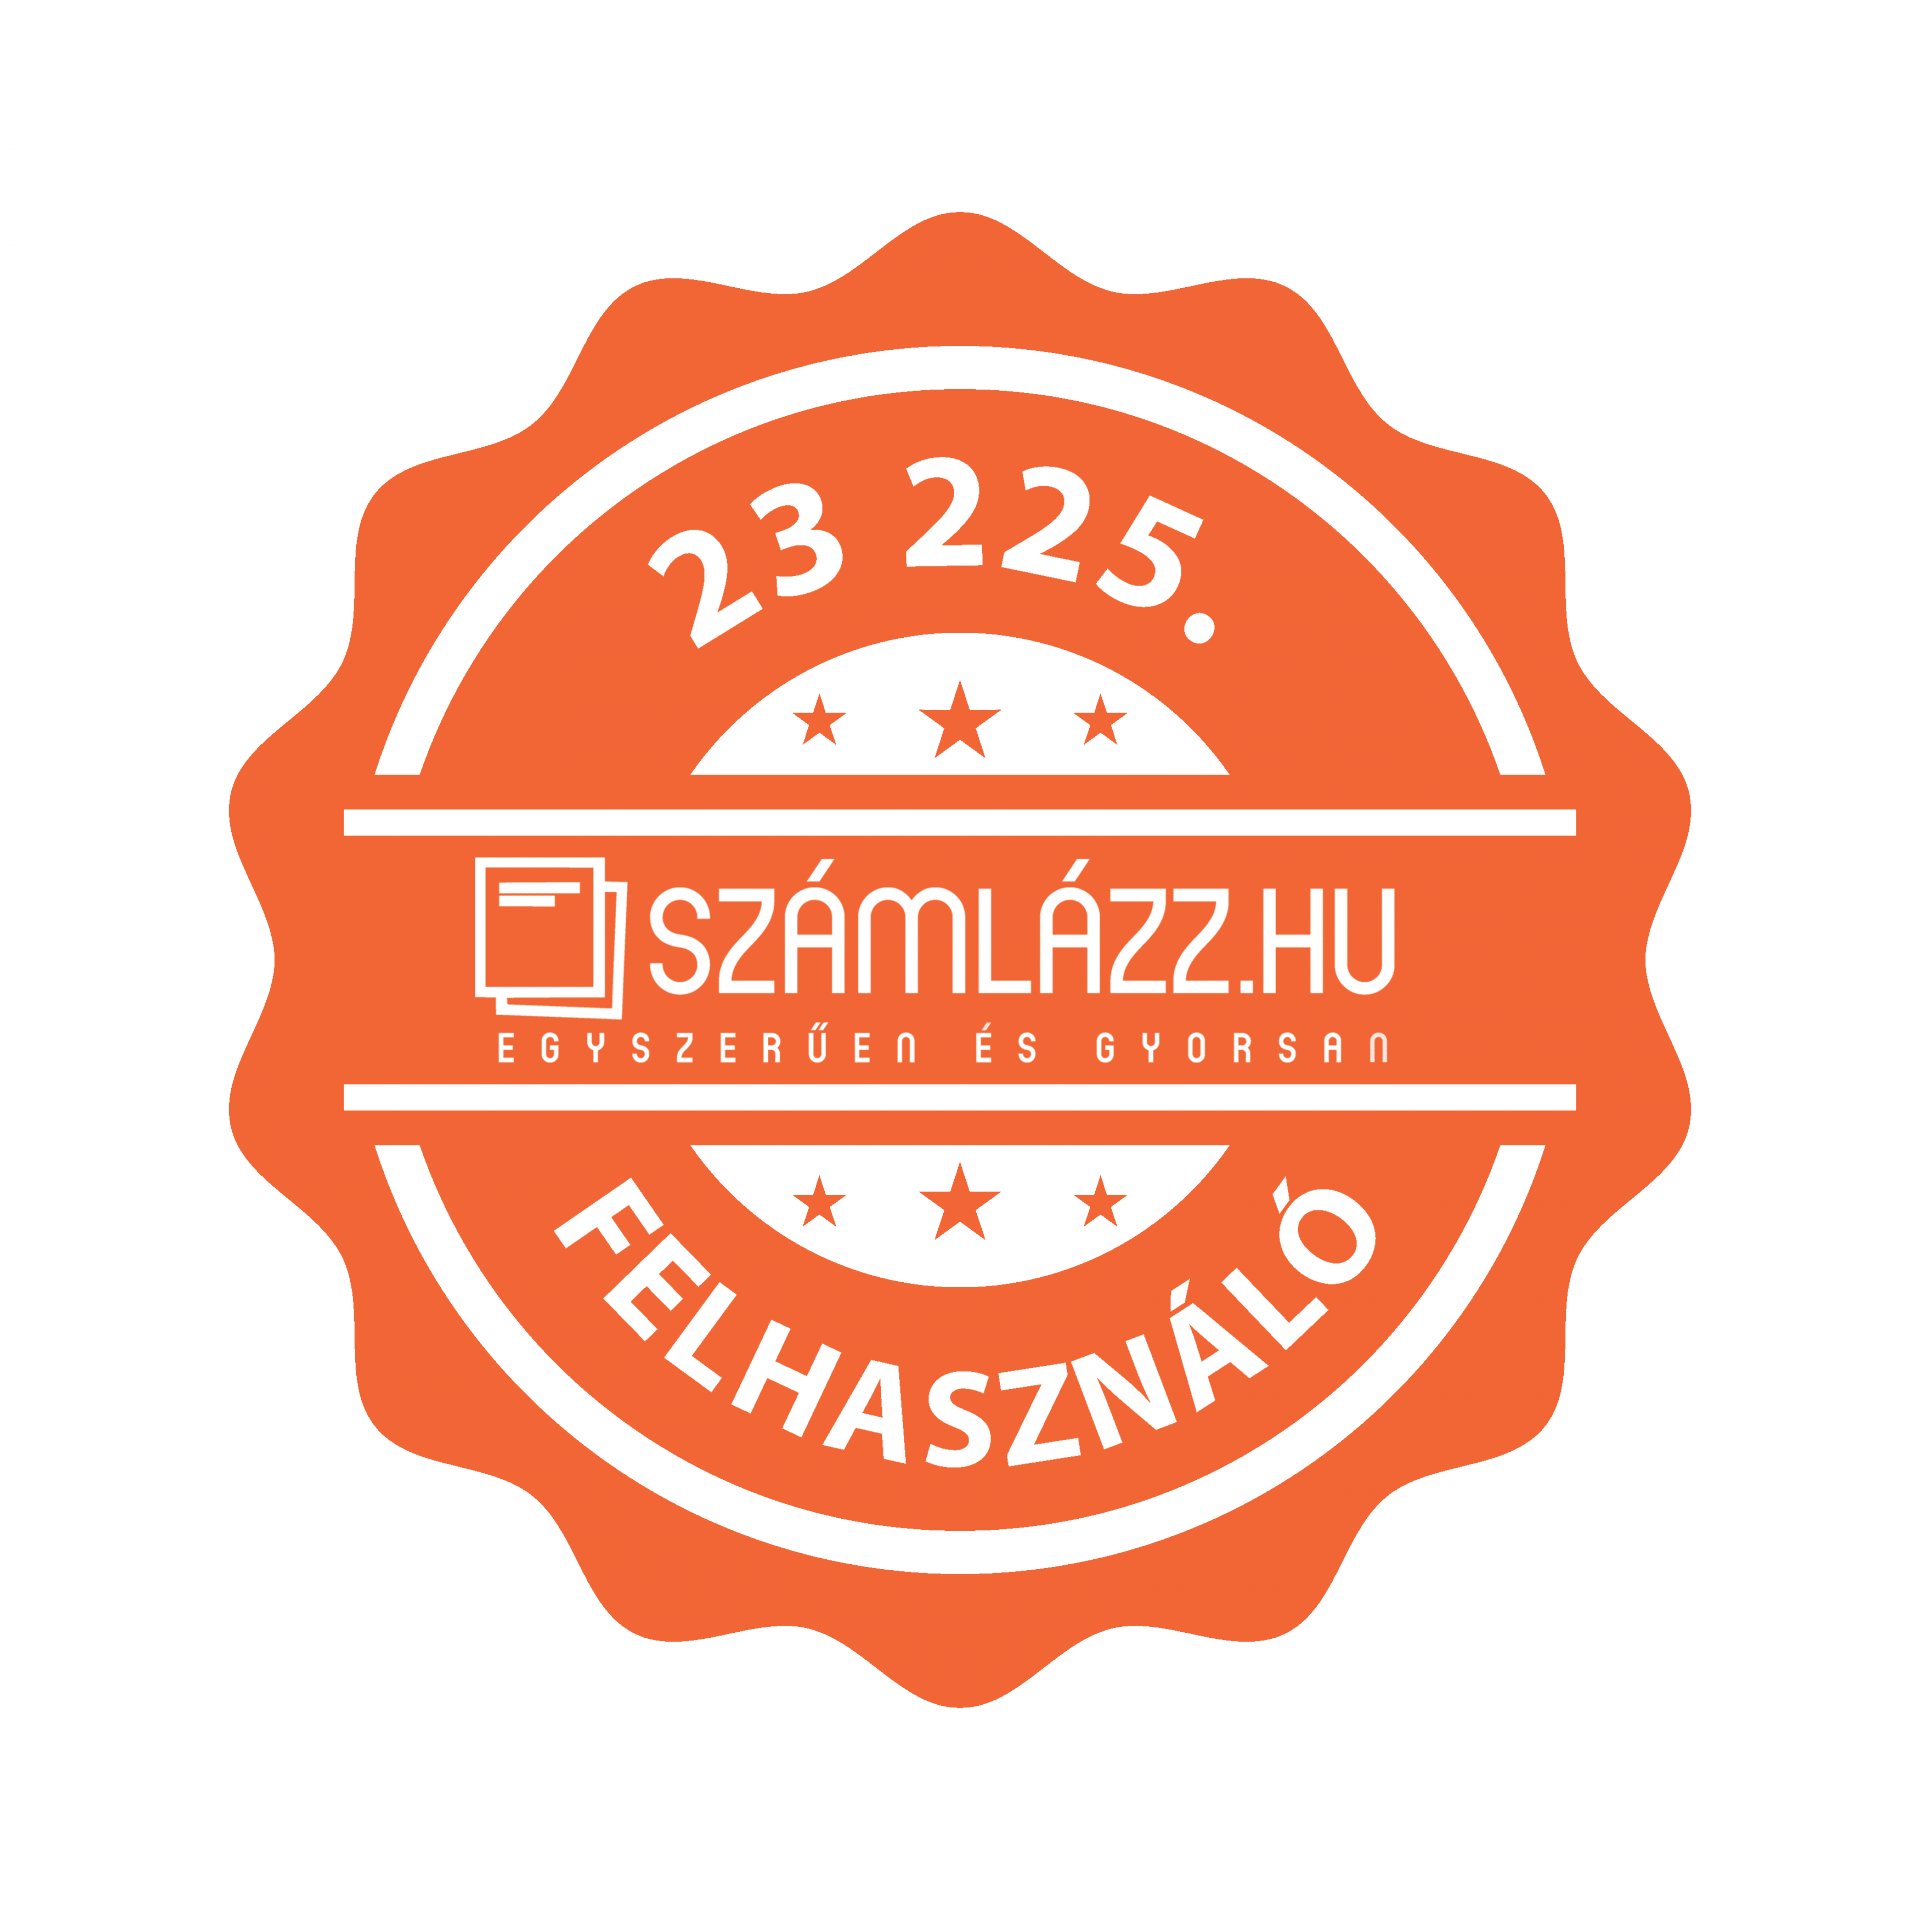 szamlazz.hu Badge